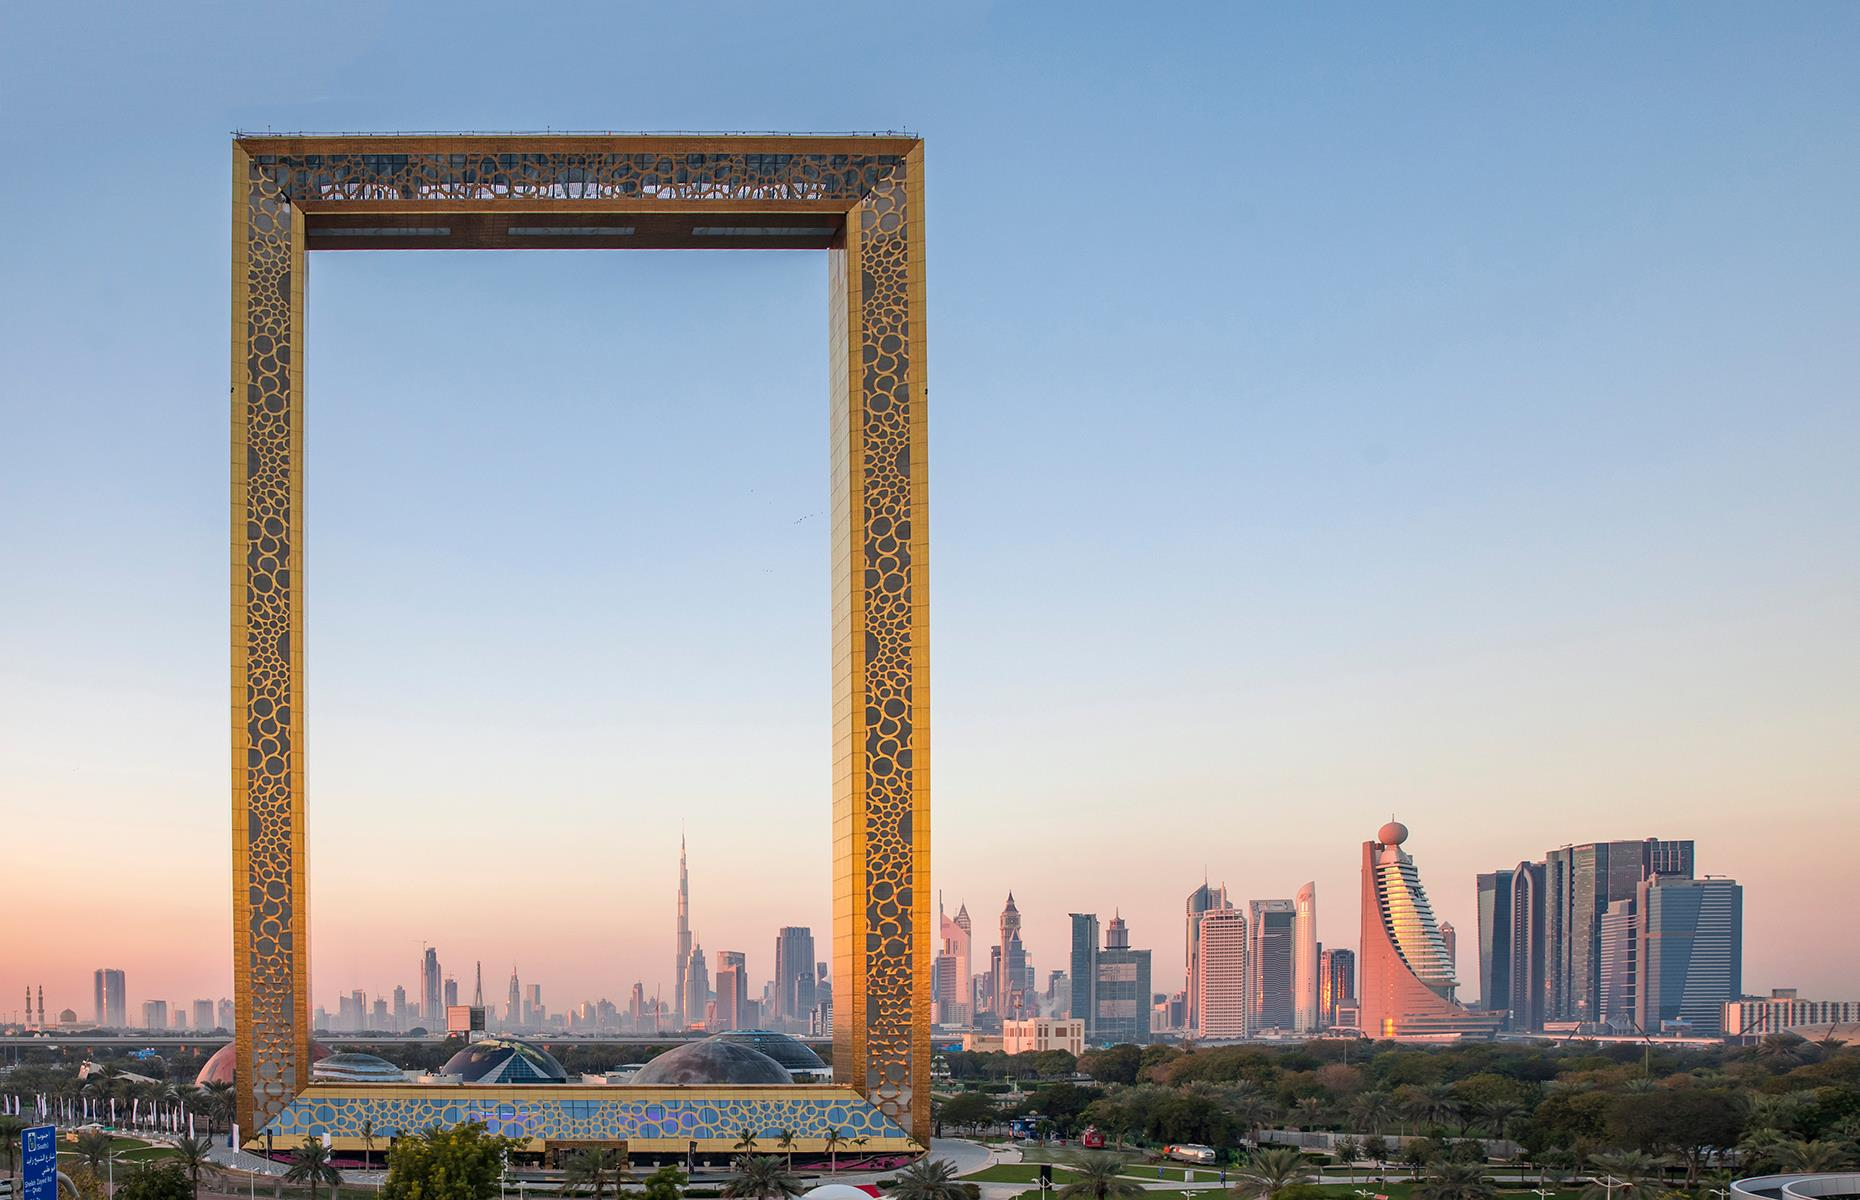 Slide 51 of 53: Rising from Dubai's Zabeel Park, the Dubai Frame is positioned with a view of the old city on one side and modern landmarks on the other. The top of the frame is an observation deck. Now try guessing these UK landmarks from their super close-ups.